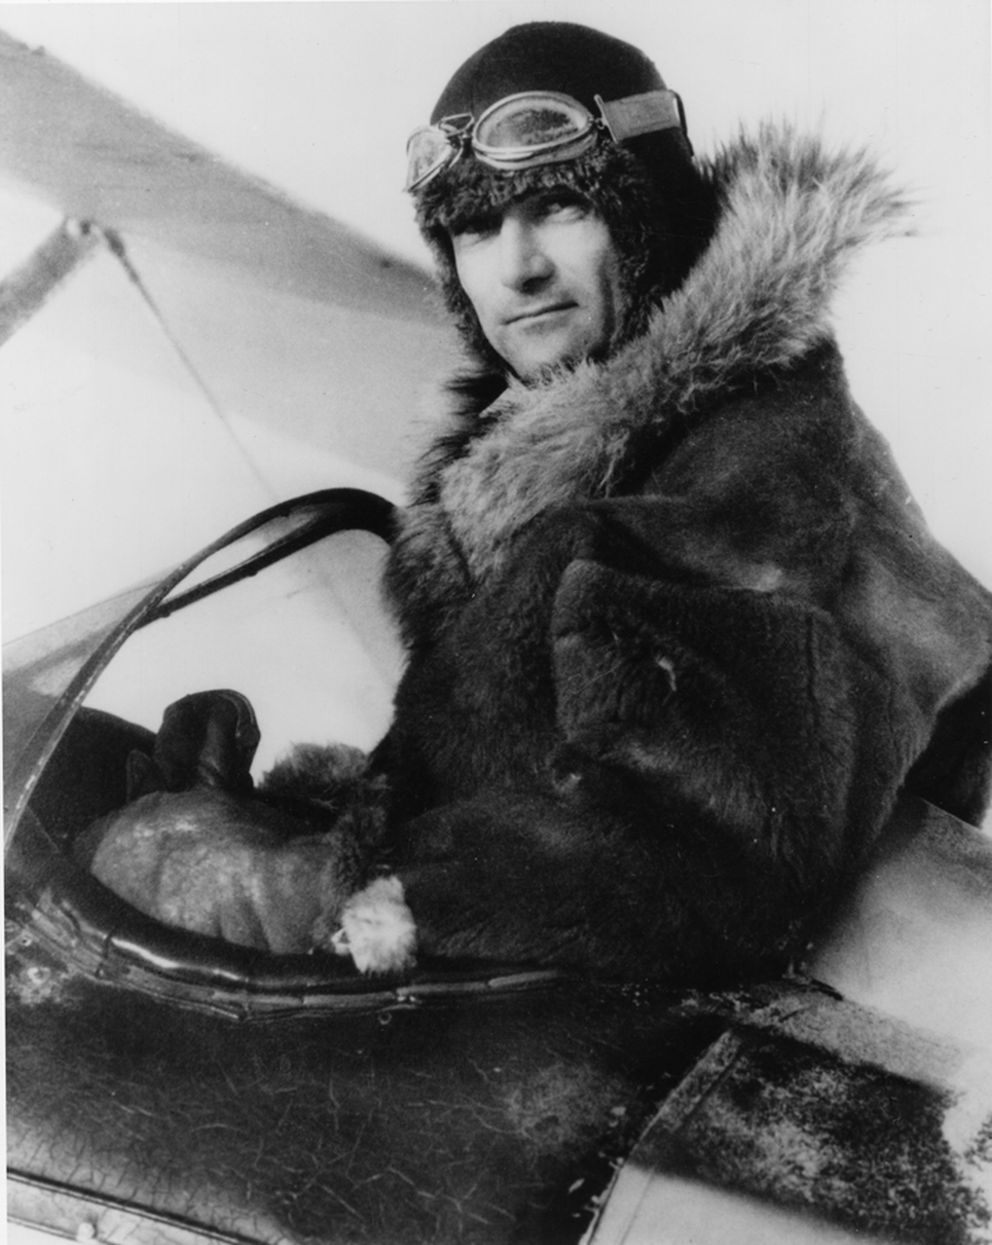 "Harold Gillam, in the cockpit of his ski-equipped Waco, circa 1920s. He was among the boldest of Alaska's pioneer bush pilots, earning the nickname ""Thrill 'em, spill 'em, no kill 'em Gillam."" He died in 1943 when he crash-landed in Misty Fjords National Monument near Ketchikan. He survived the crash, but succumbed to the January cold before searchers found him. (Anchorage Museum photo)"